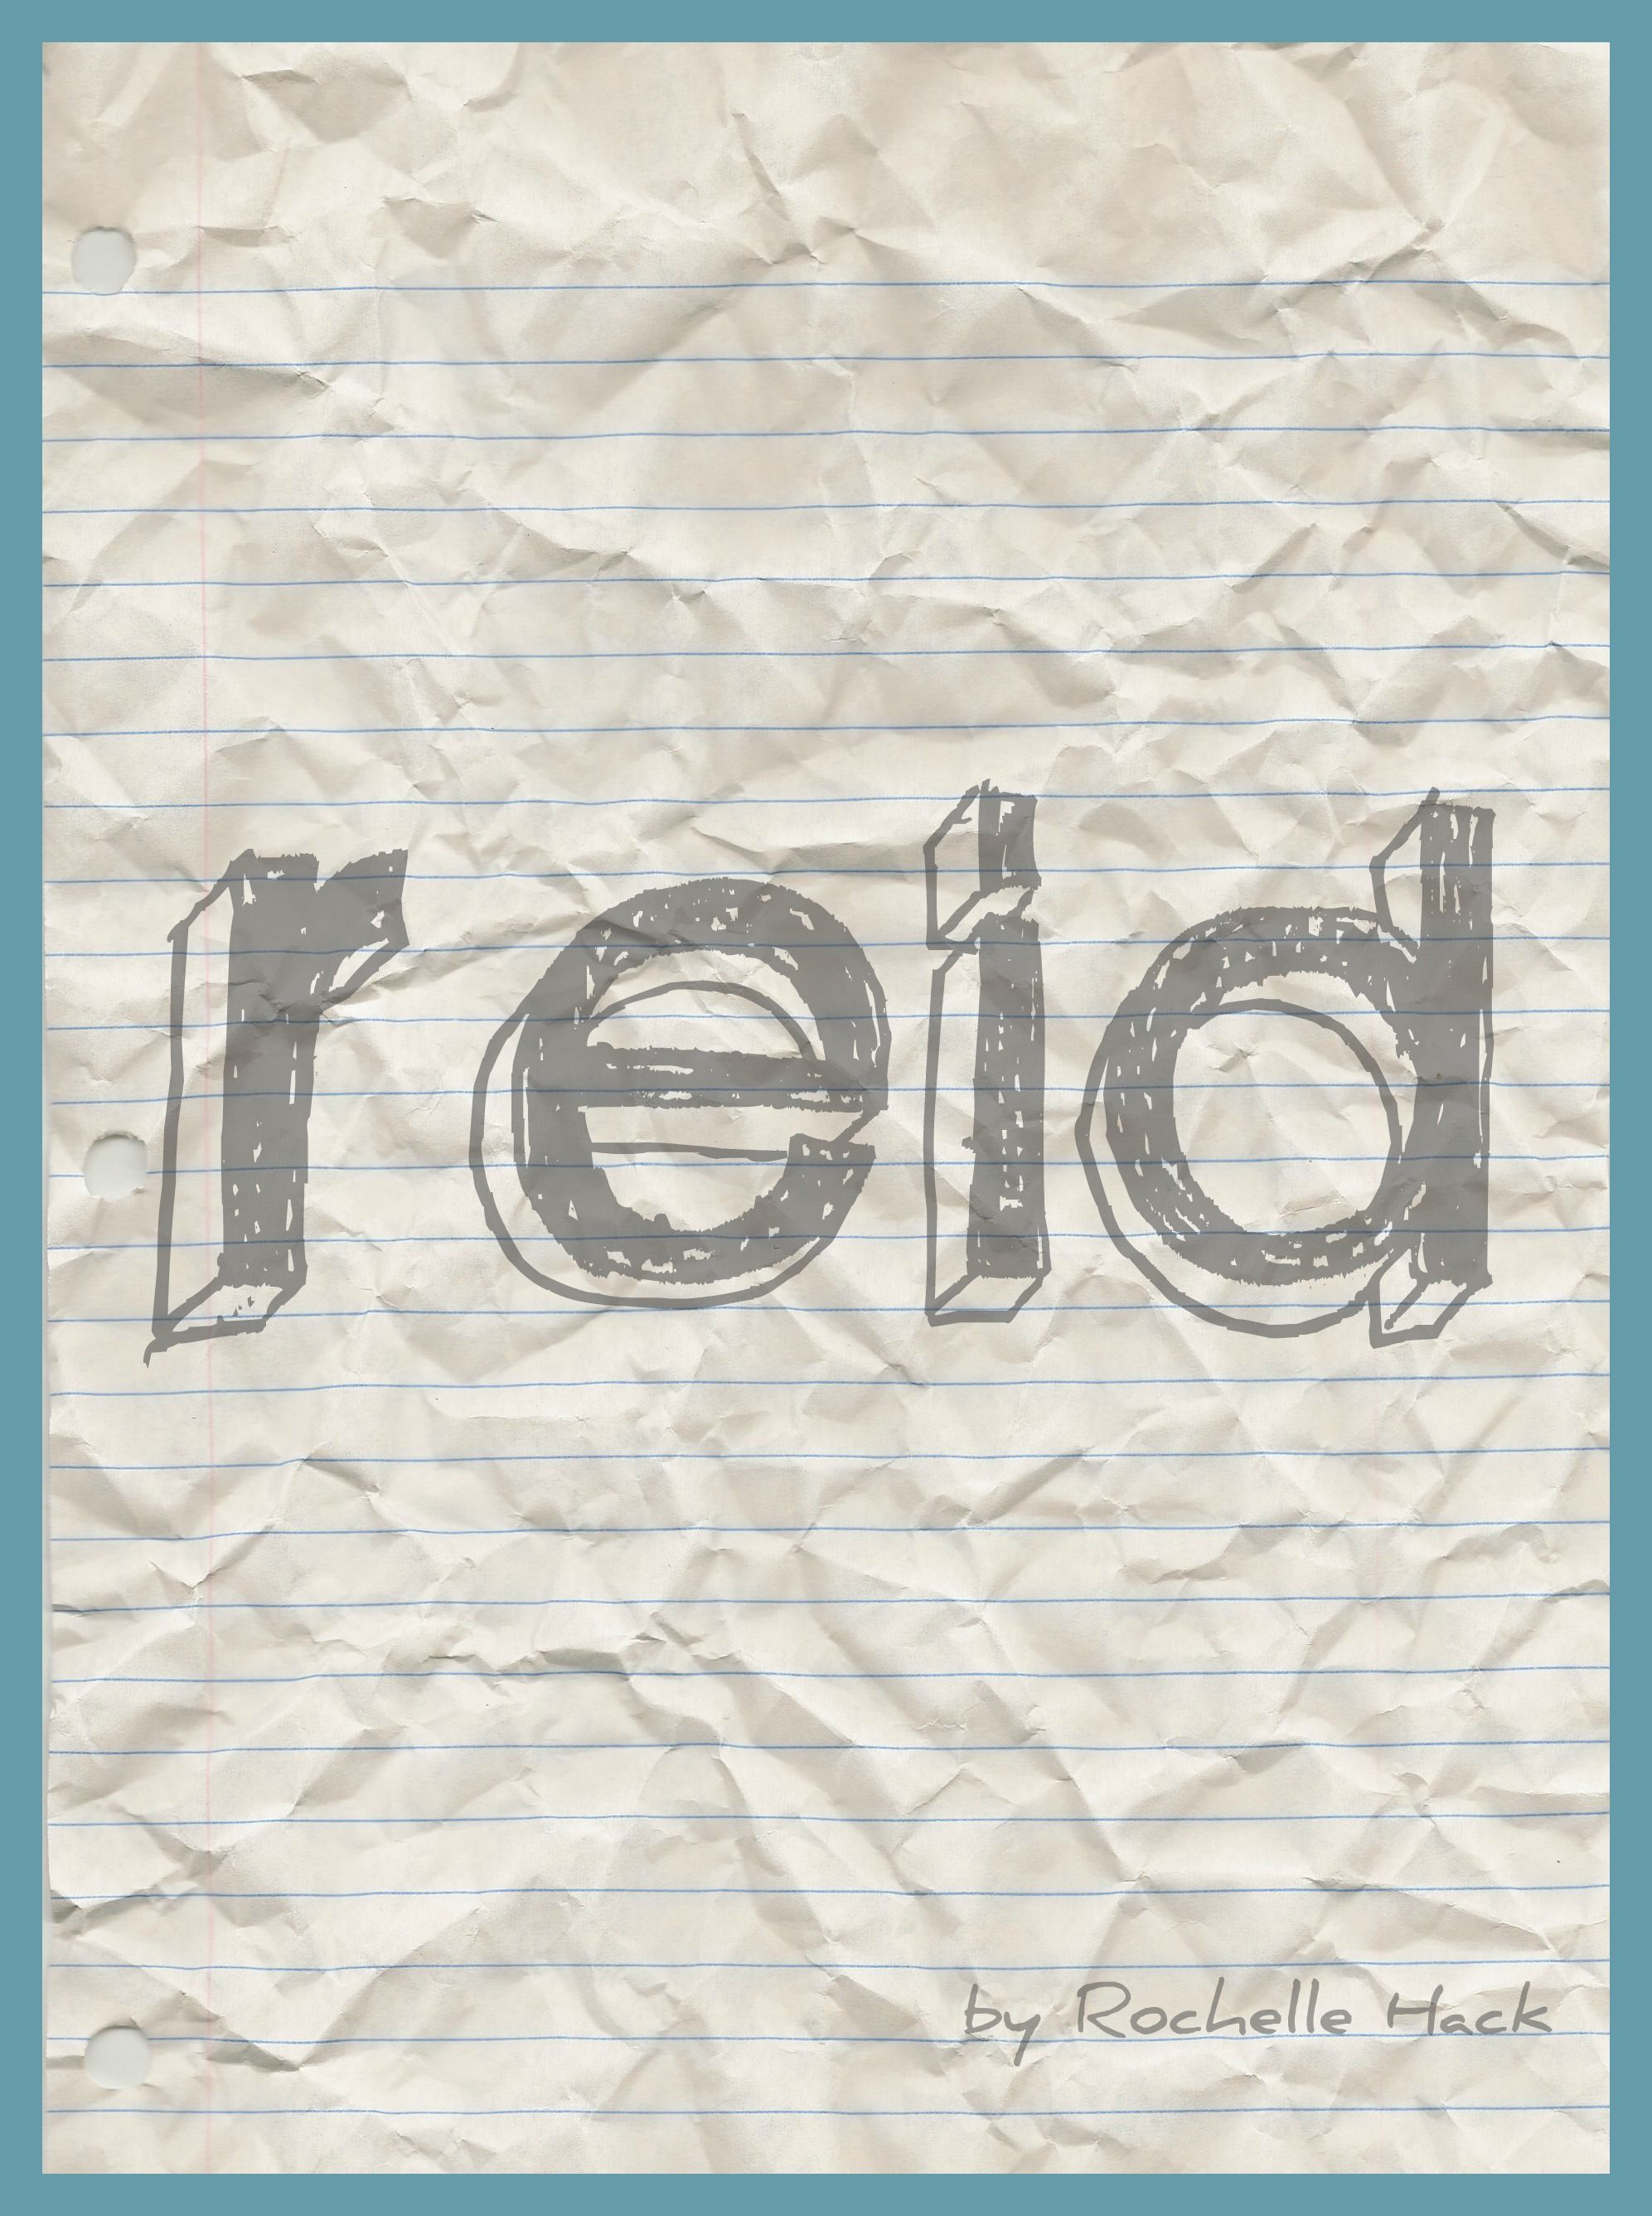 reid name. reid. meaning: red haired. origin: scottish; irish clan name from northern reid